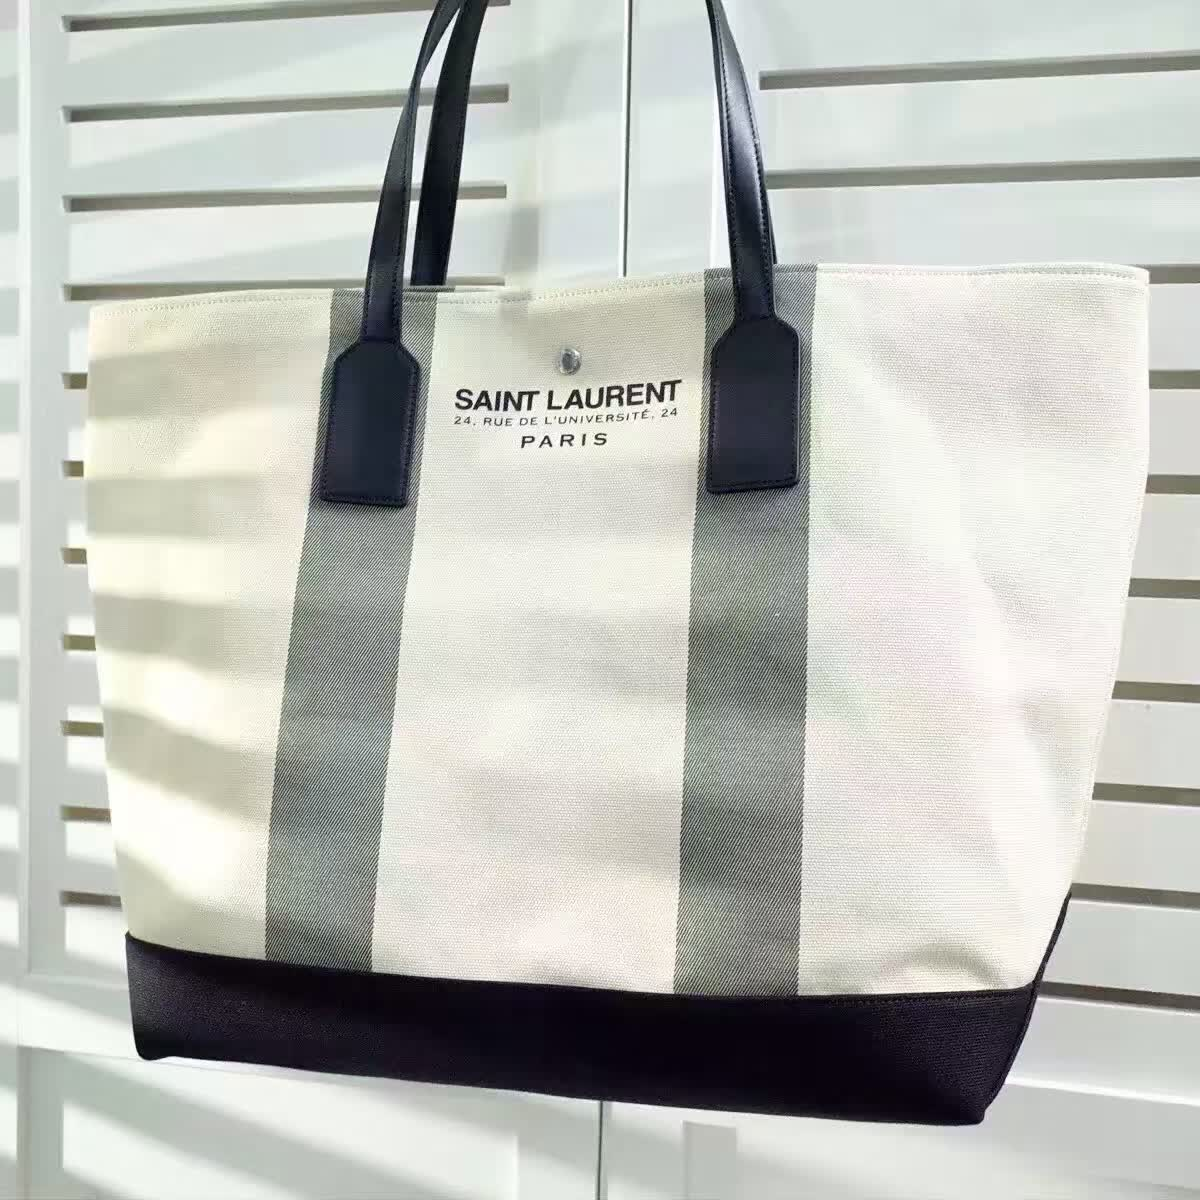 Limited Edition!2016 Cheap YSL Out Sale with Free Shipping-Saint Laurent Beach Shopping East/West Tote Bag in Light Beige and Khaki Canvas and Black Leather